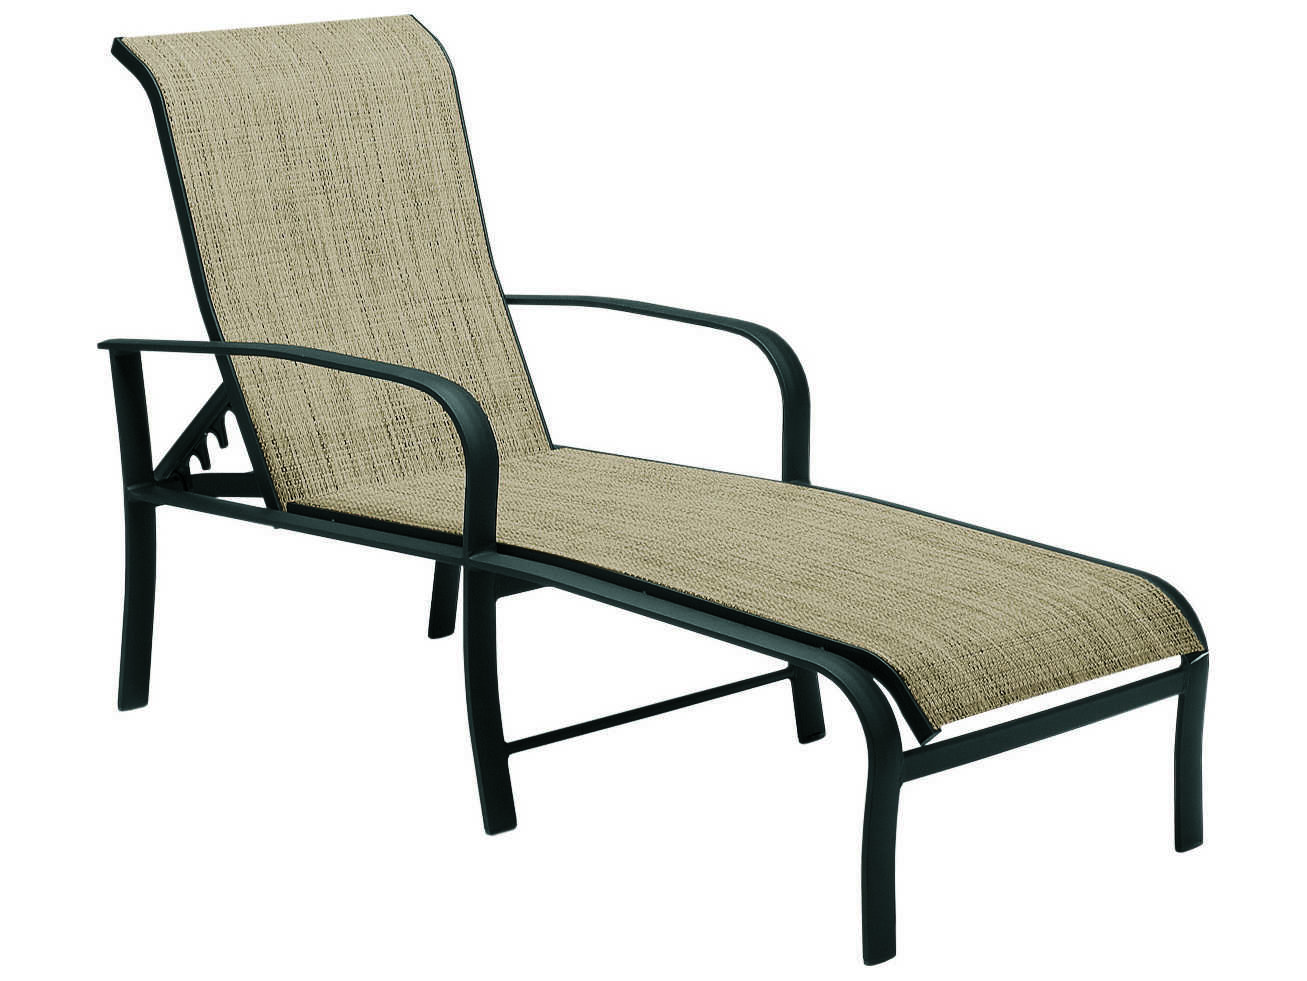 Woodard fremont sling aluminum adjustable chaise lounge for Aluminum outdoor chaise lounge